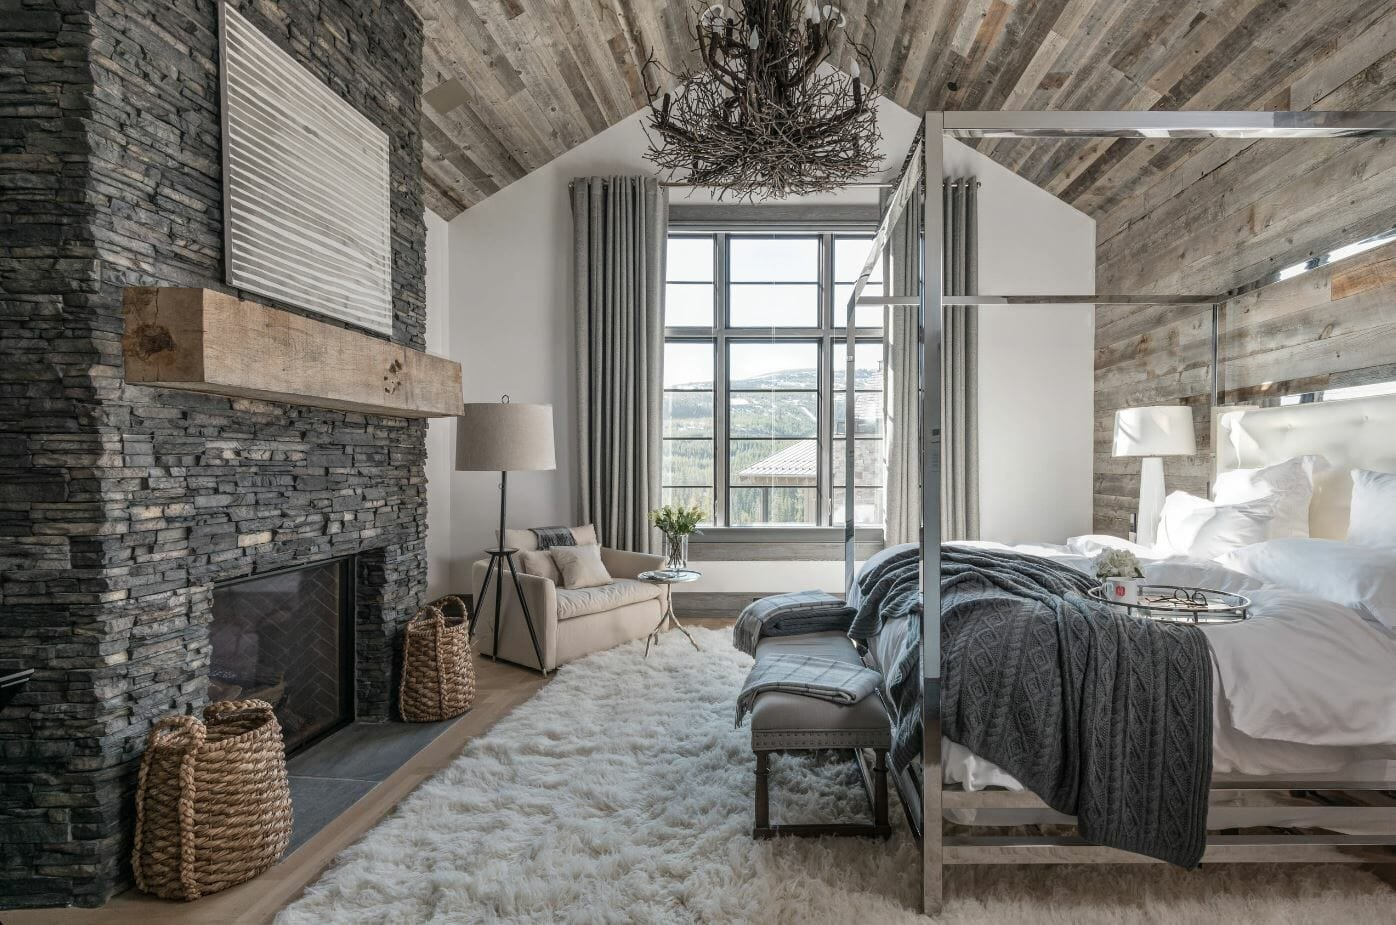 modern rustic interior design bedroom